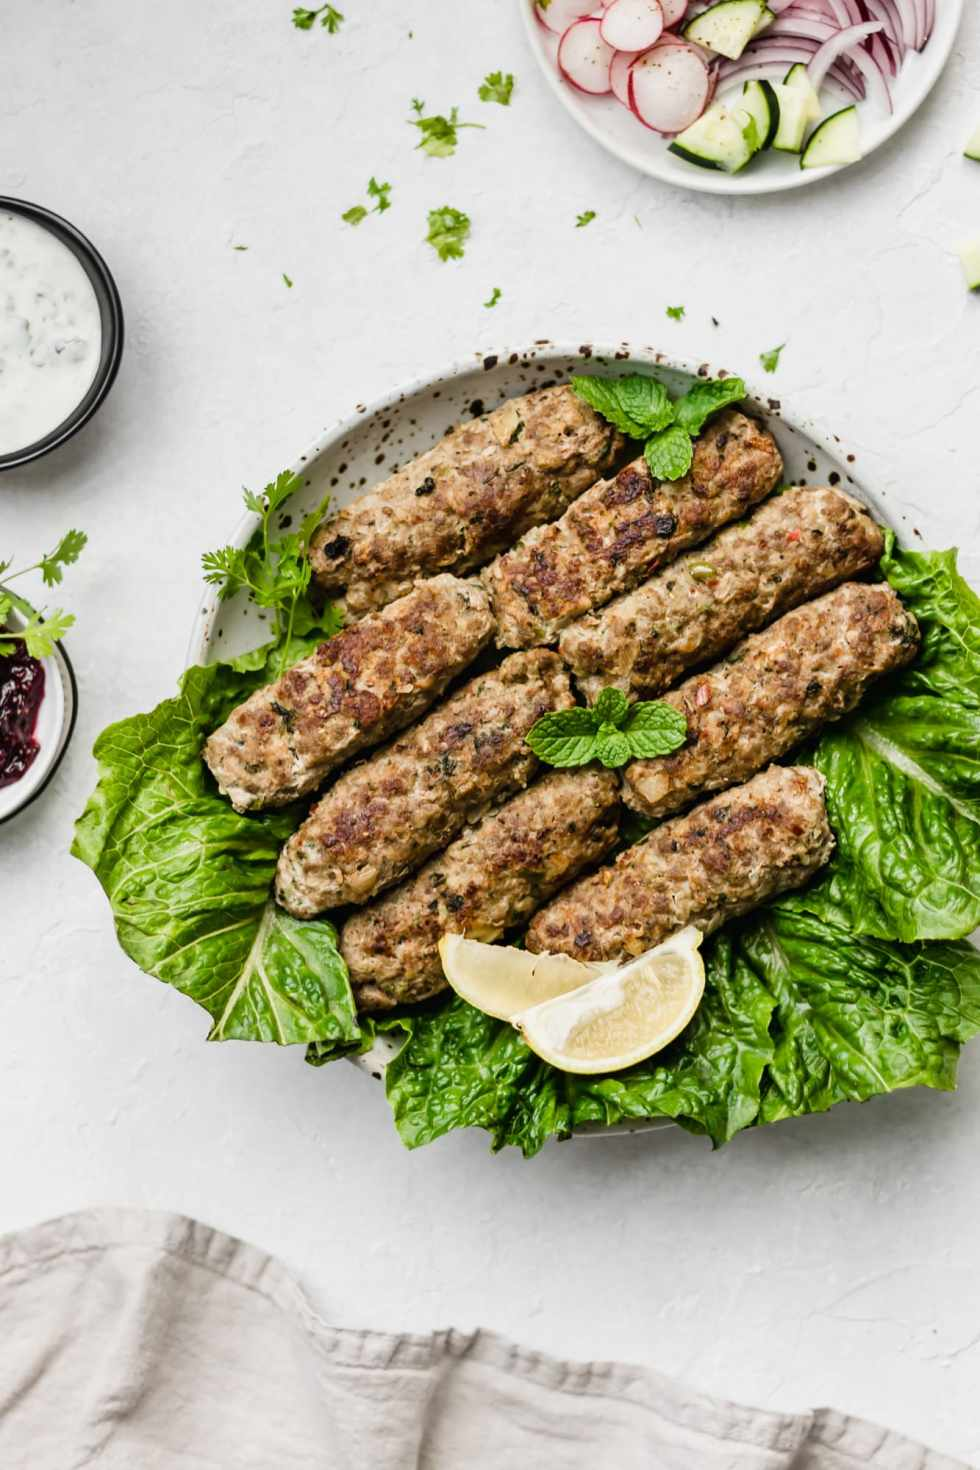 Baked Pakistani Seekh Kabob (Ground Beef Skewers)